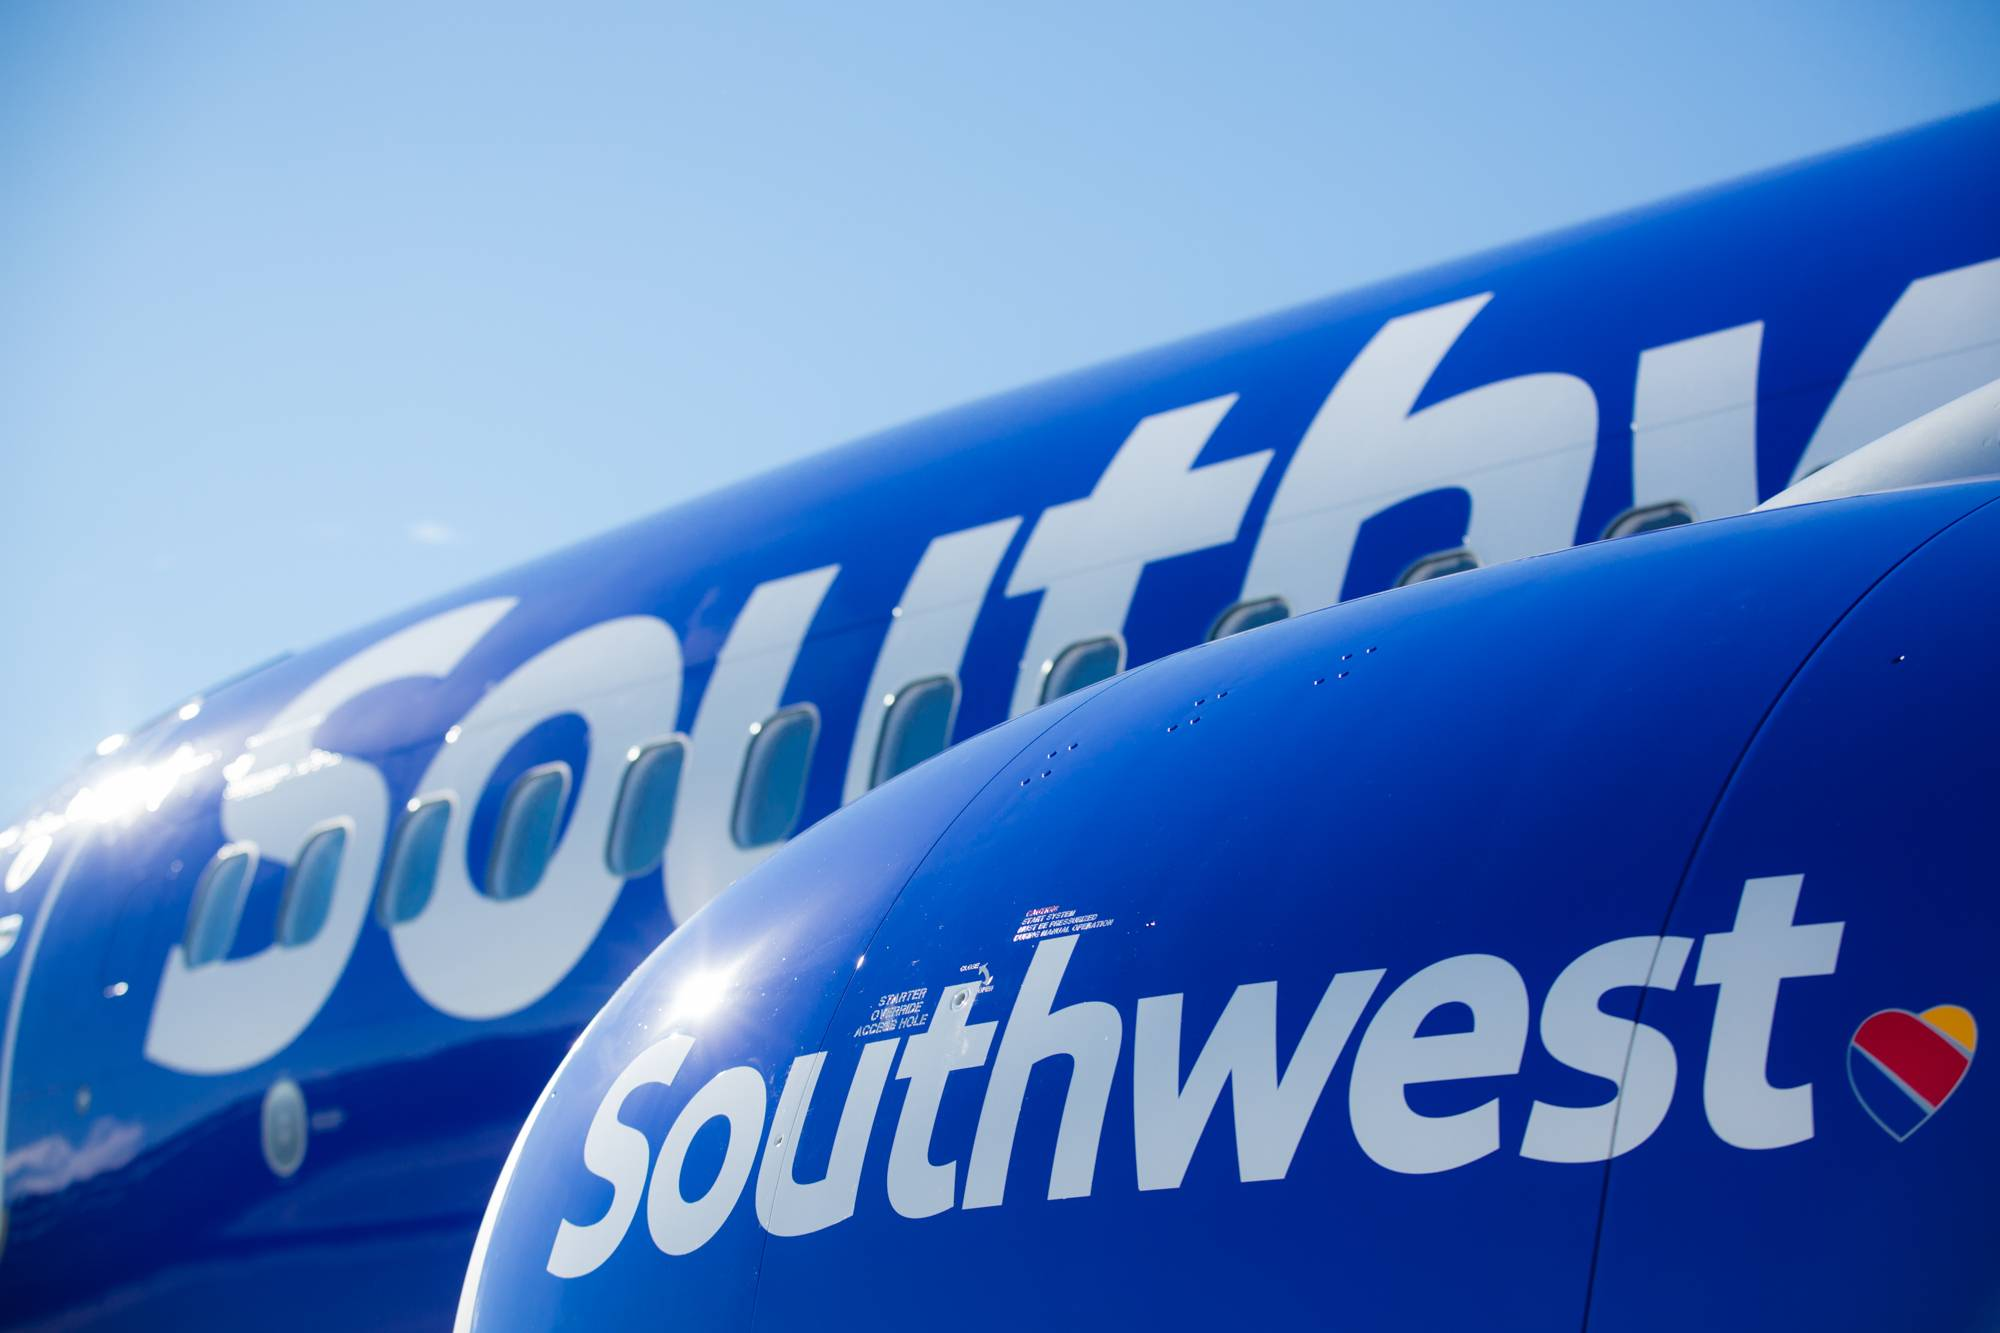 Southwest Airlines revealed a modern new look